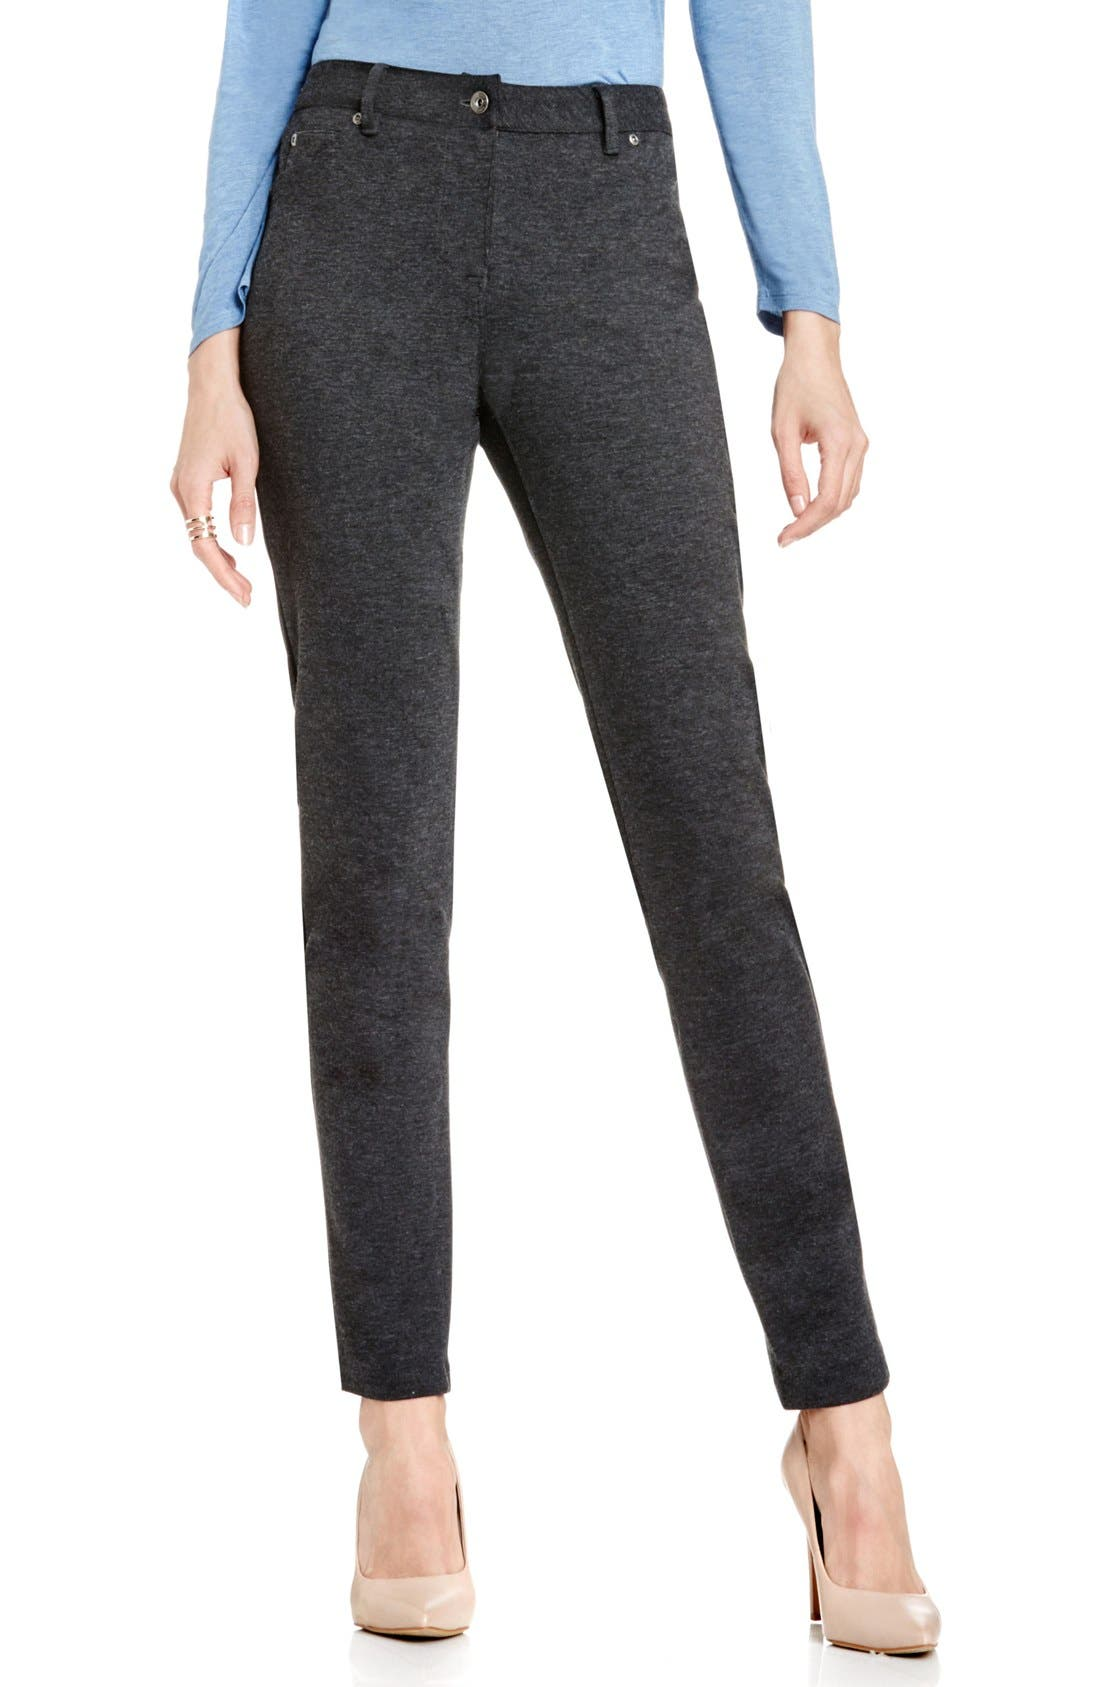 Main Image - Two by Vince Camuto Skinny Ponte Pants (Petite)